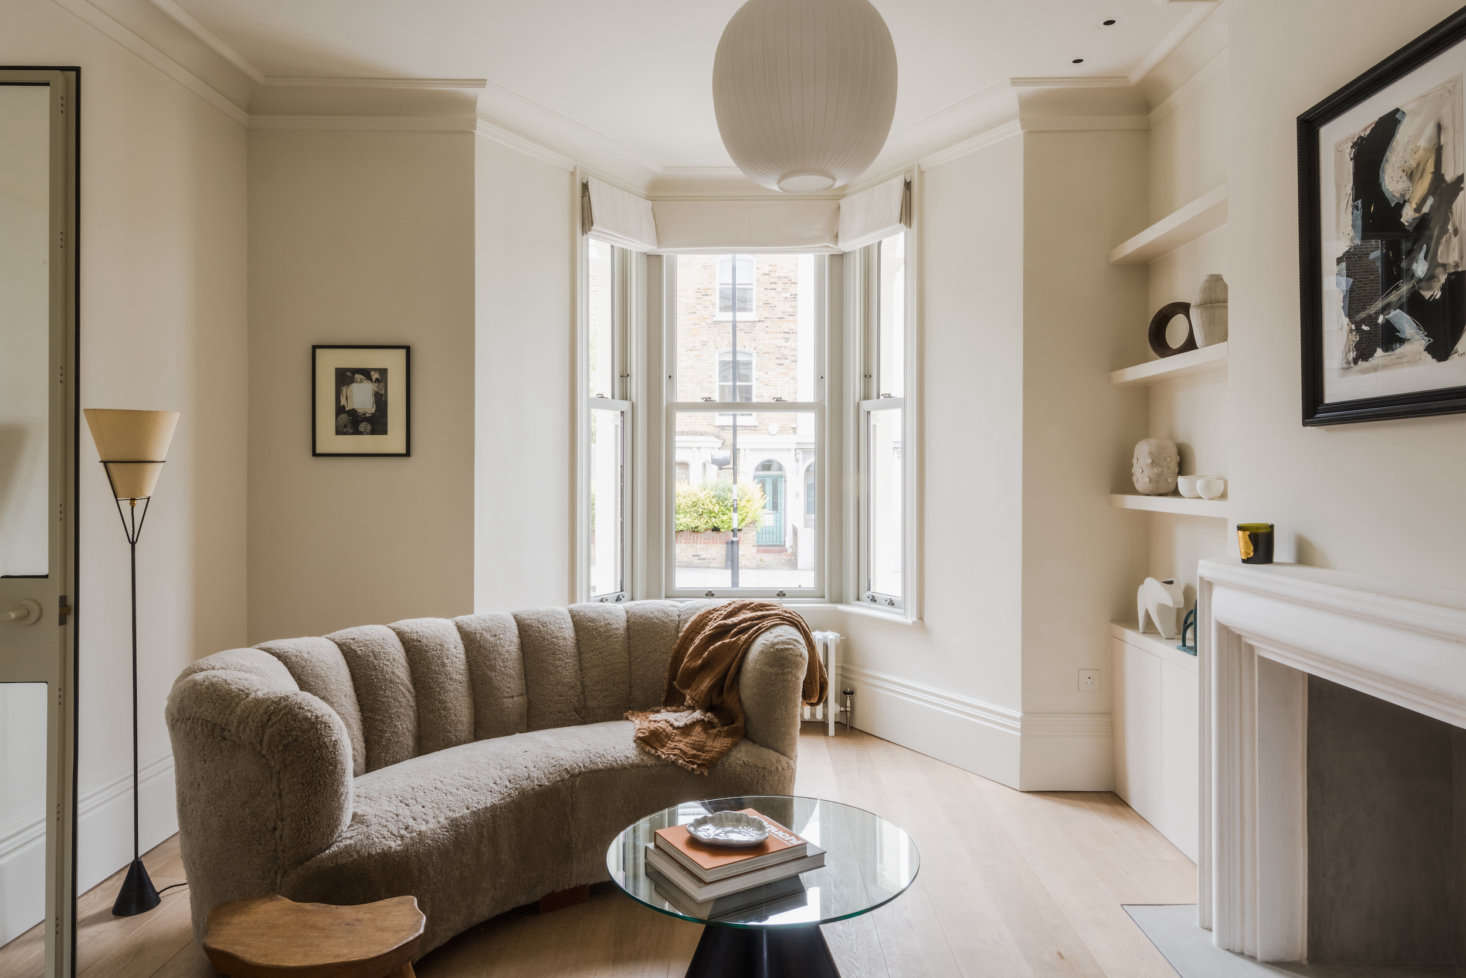 Curious what a home designed by an architect, decorator, and lighting designers looks like? See A Tale of Two Styles: Proper Victorian on the Outside, Modern Zen on the Inside. Photograph courtesy of The Modern House.